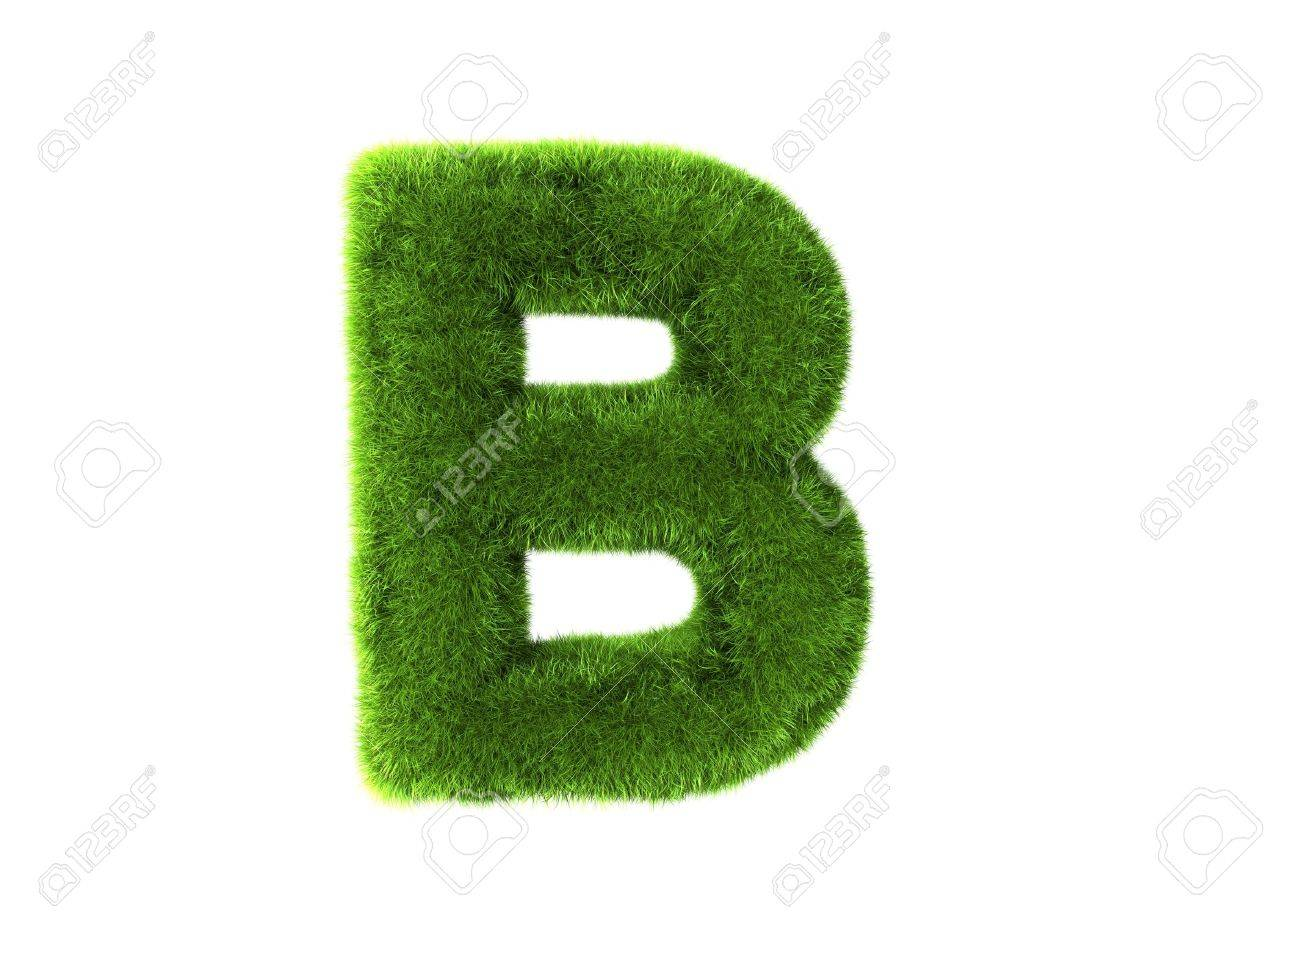 A grass b isolated on a white background Stock Photo - 8646270